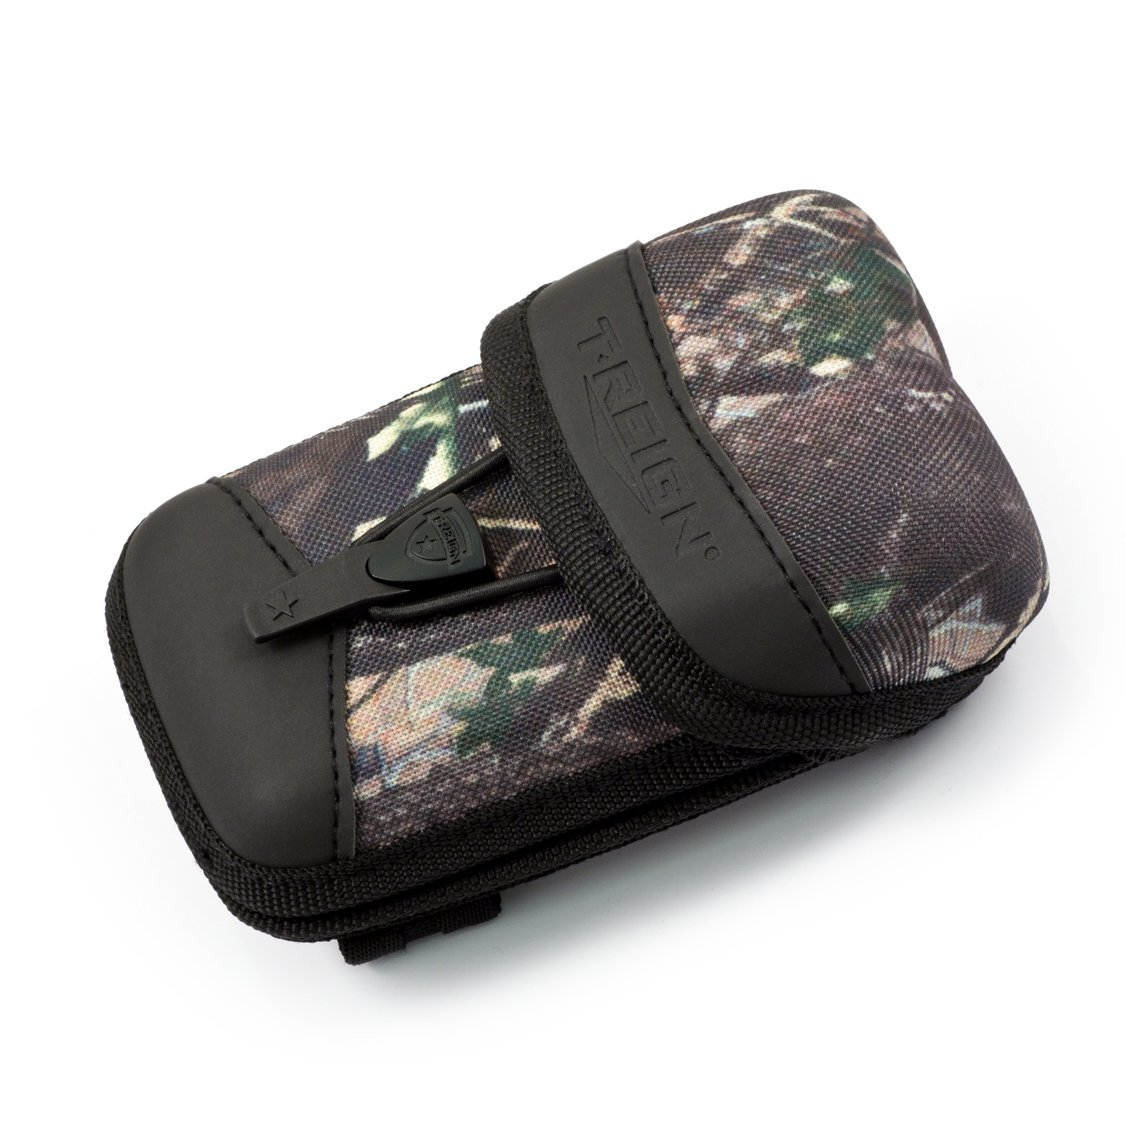 T-REIGN Medium ProCase Rigid Weather, Water and Impact Resistant Handheld GPS Case with 36'' Kevlar Retractable Tether, Camo Print by T-REIGN